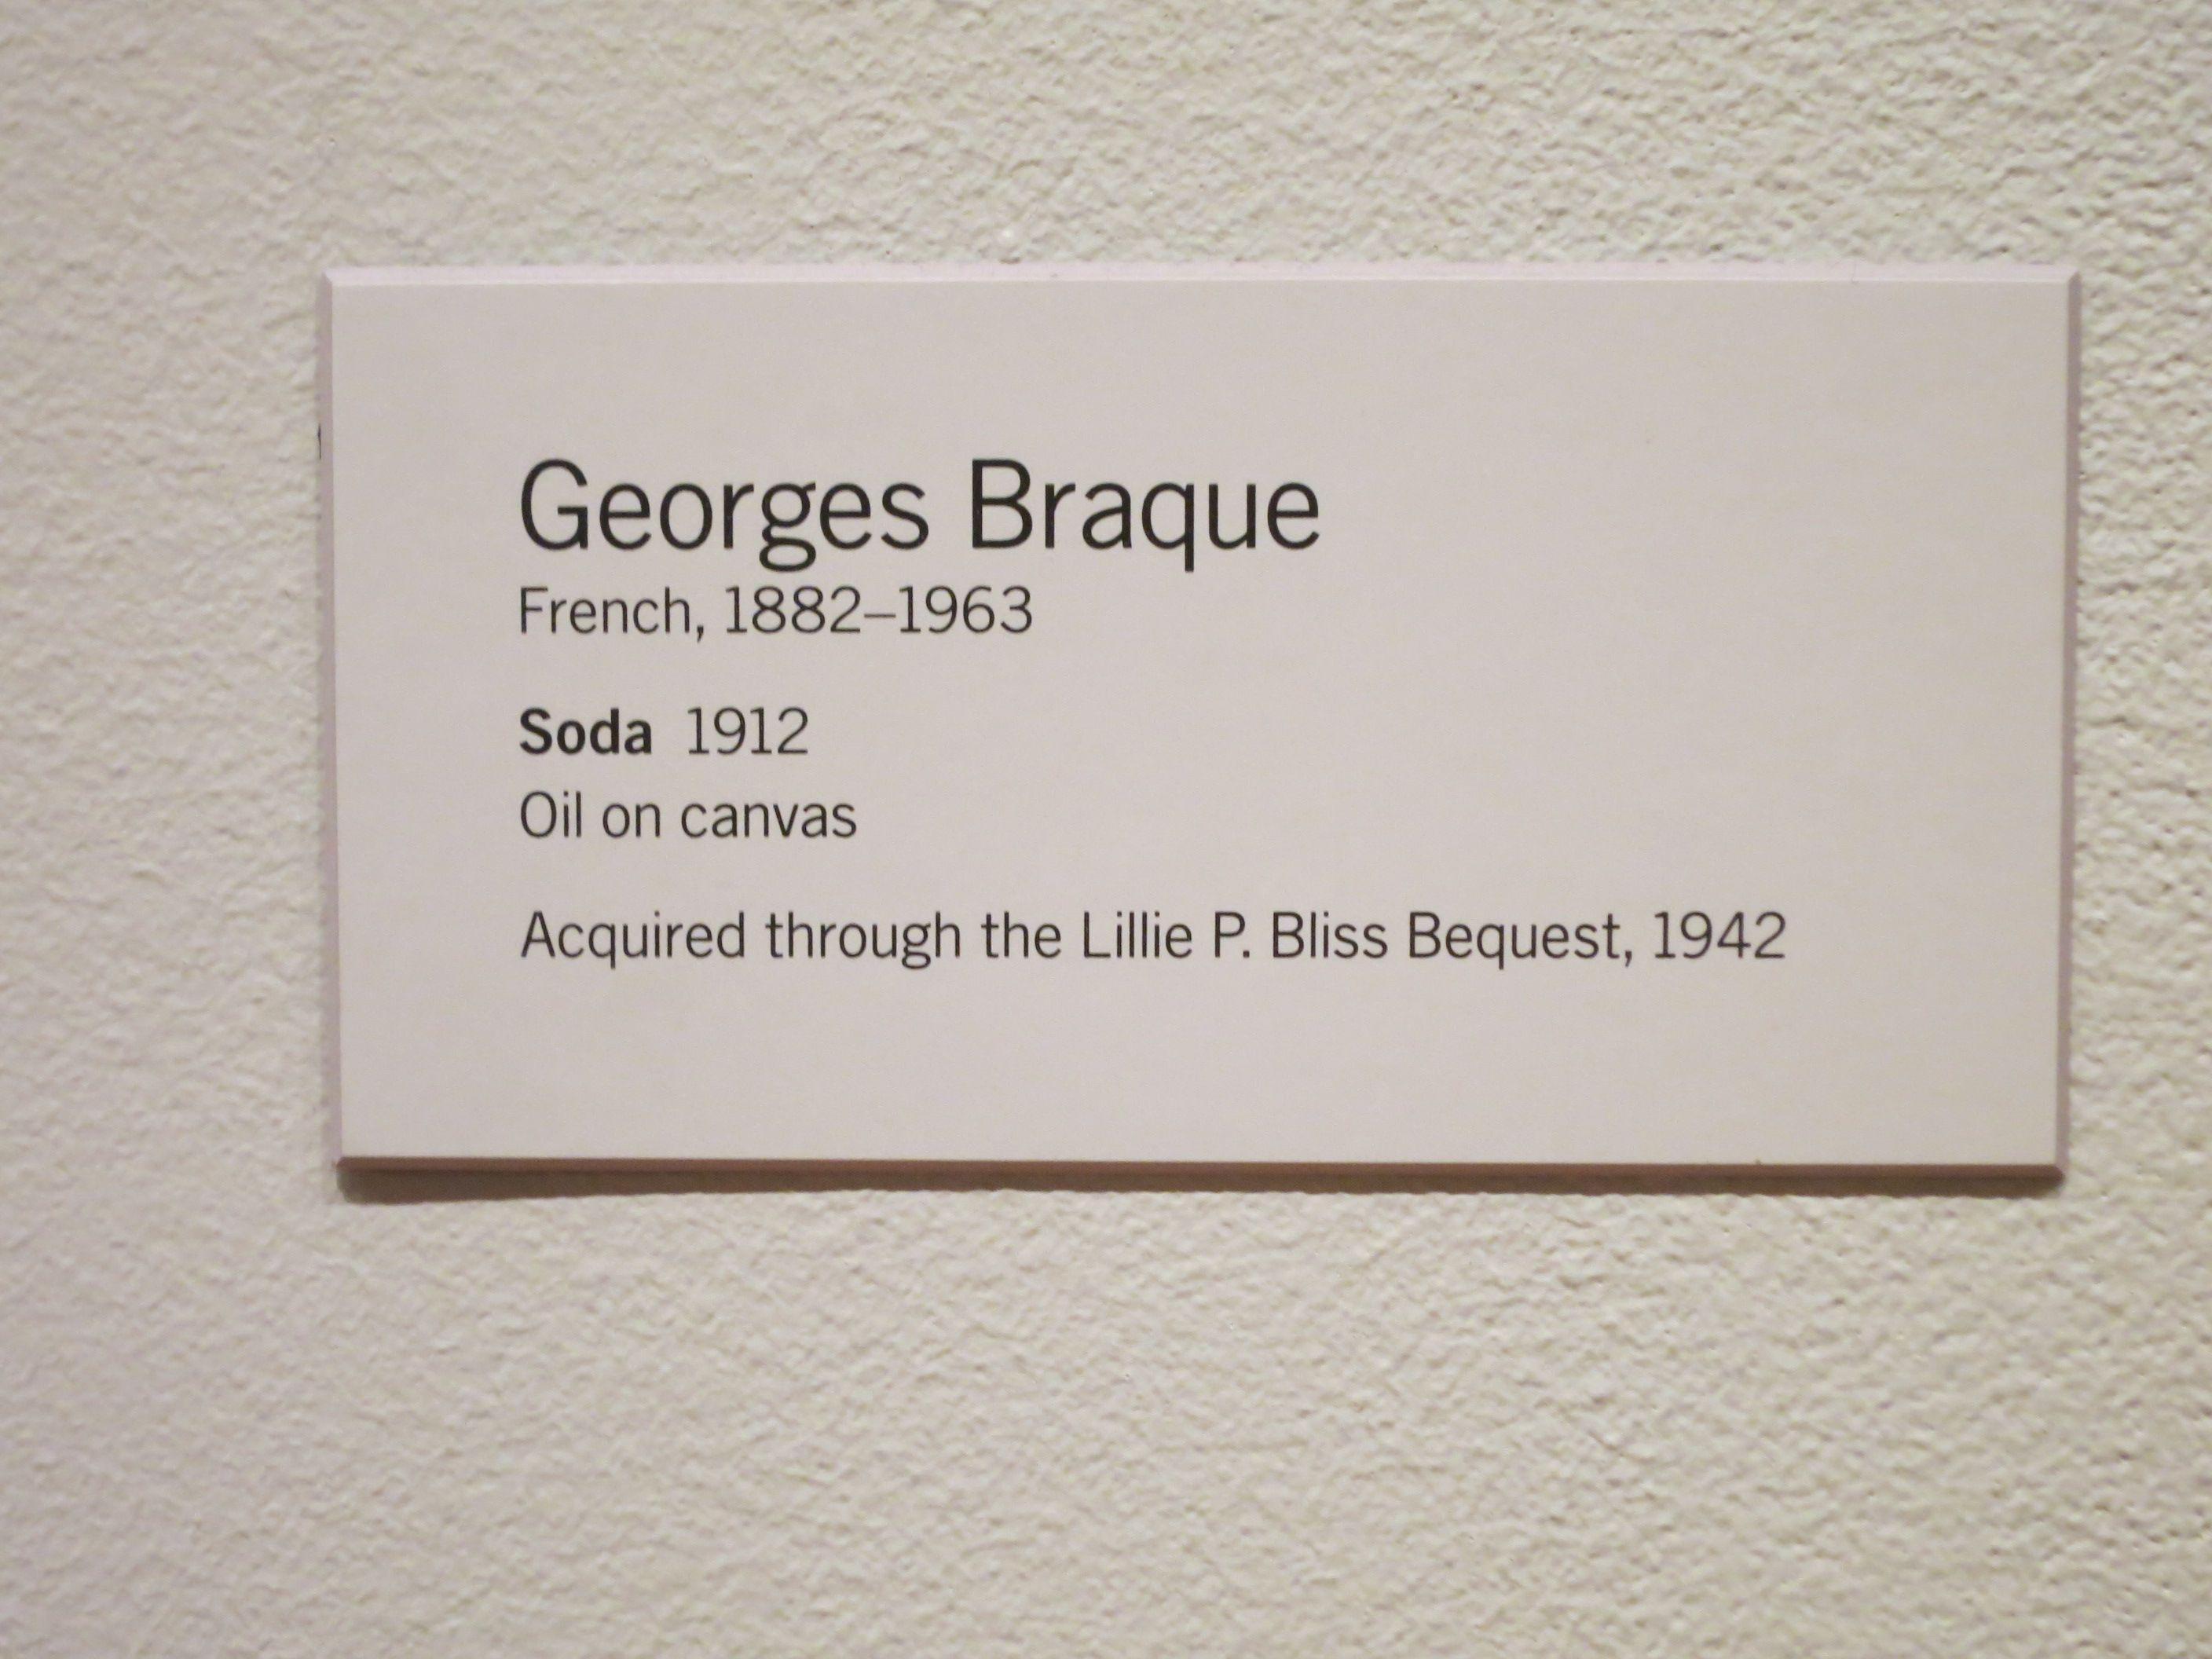 Classic and straight-forward exhibit label. Easy to read ...